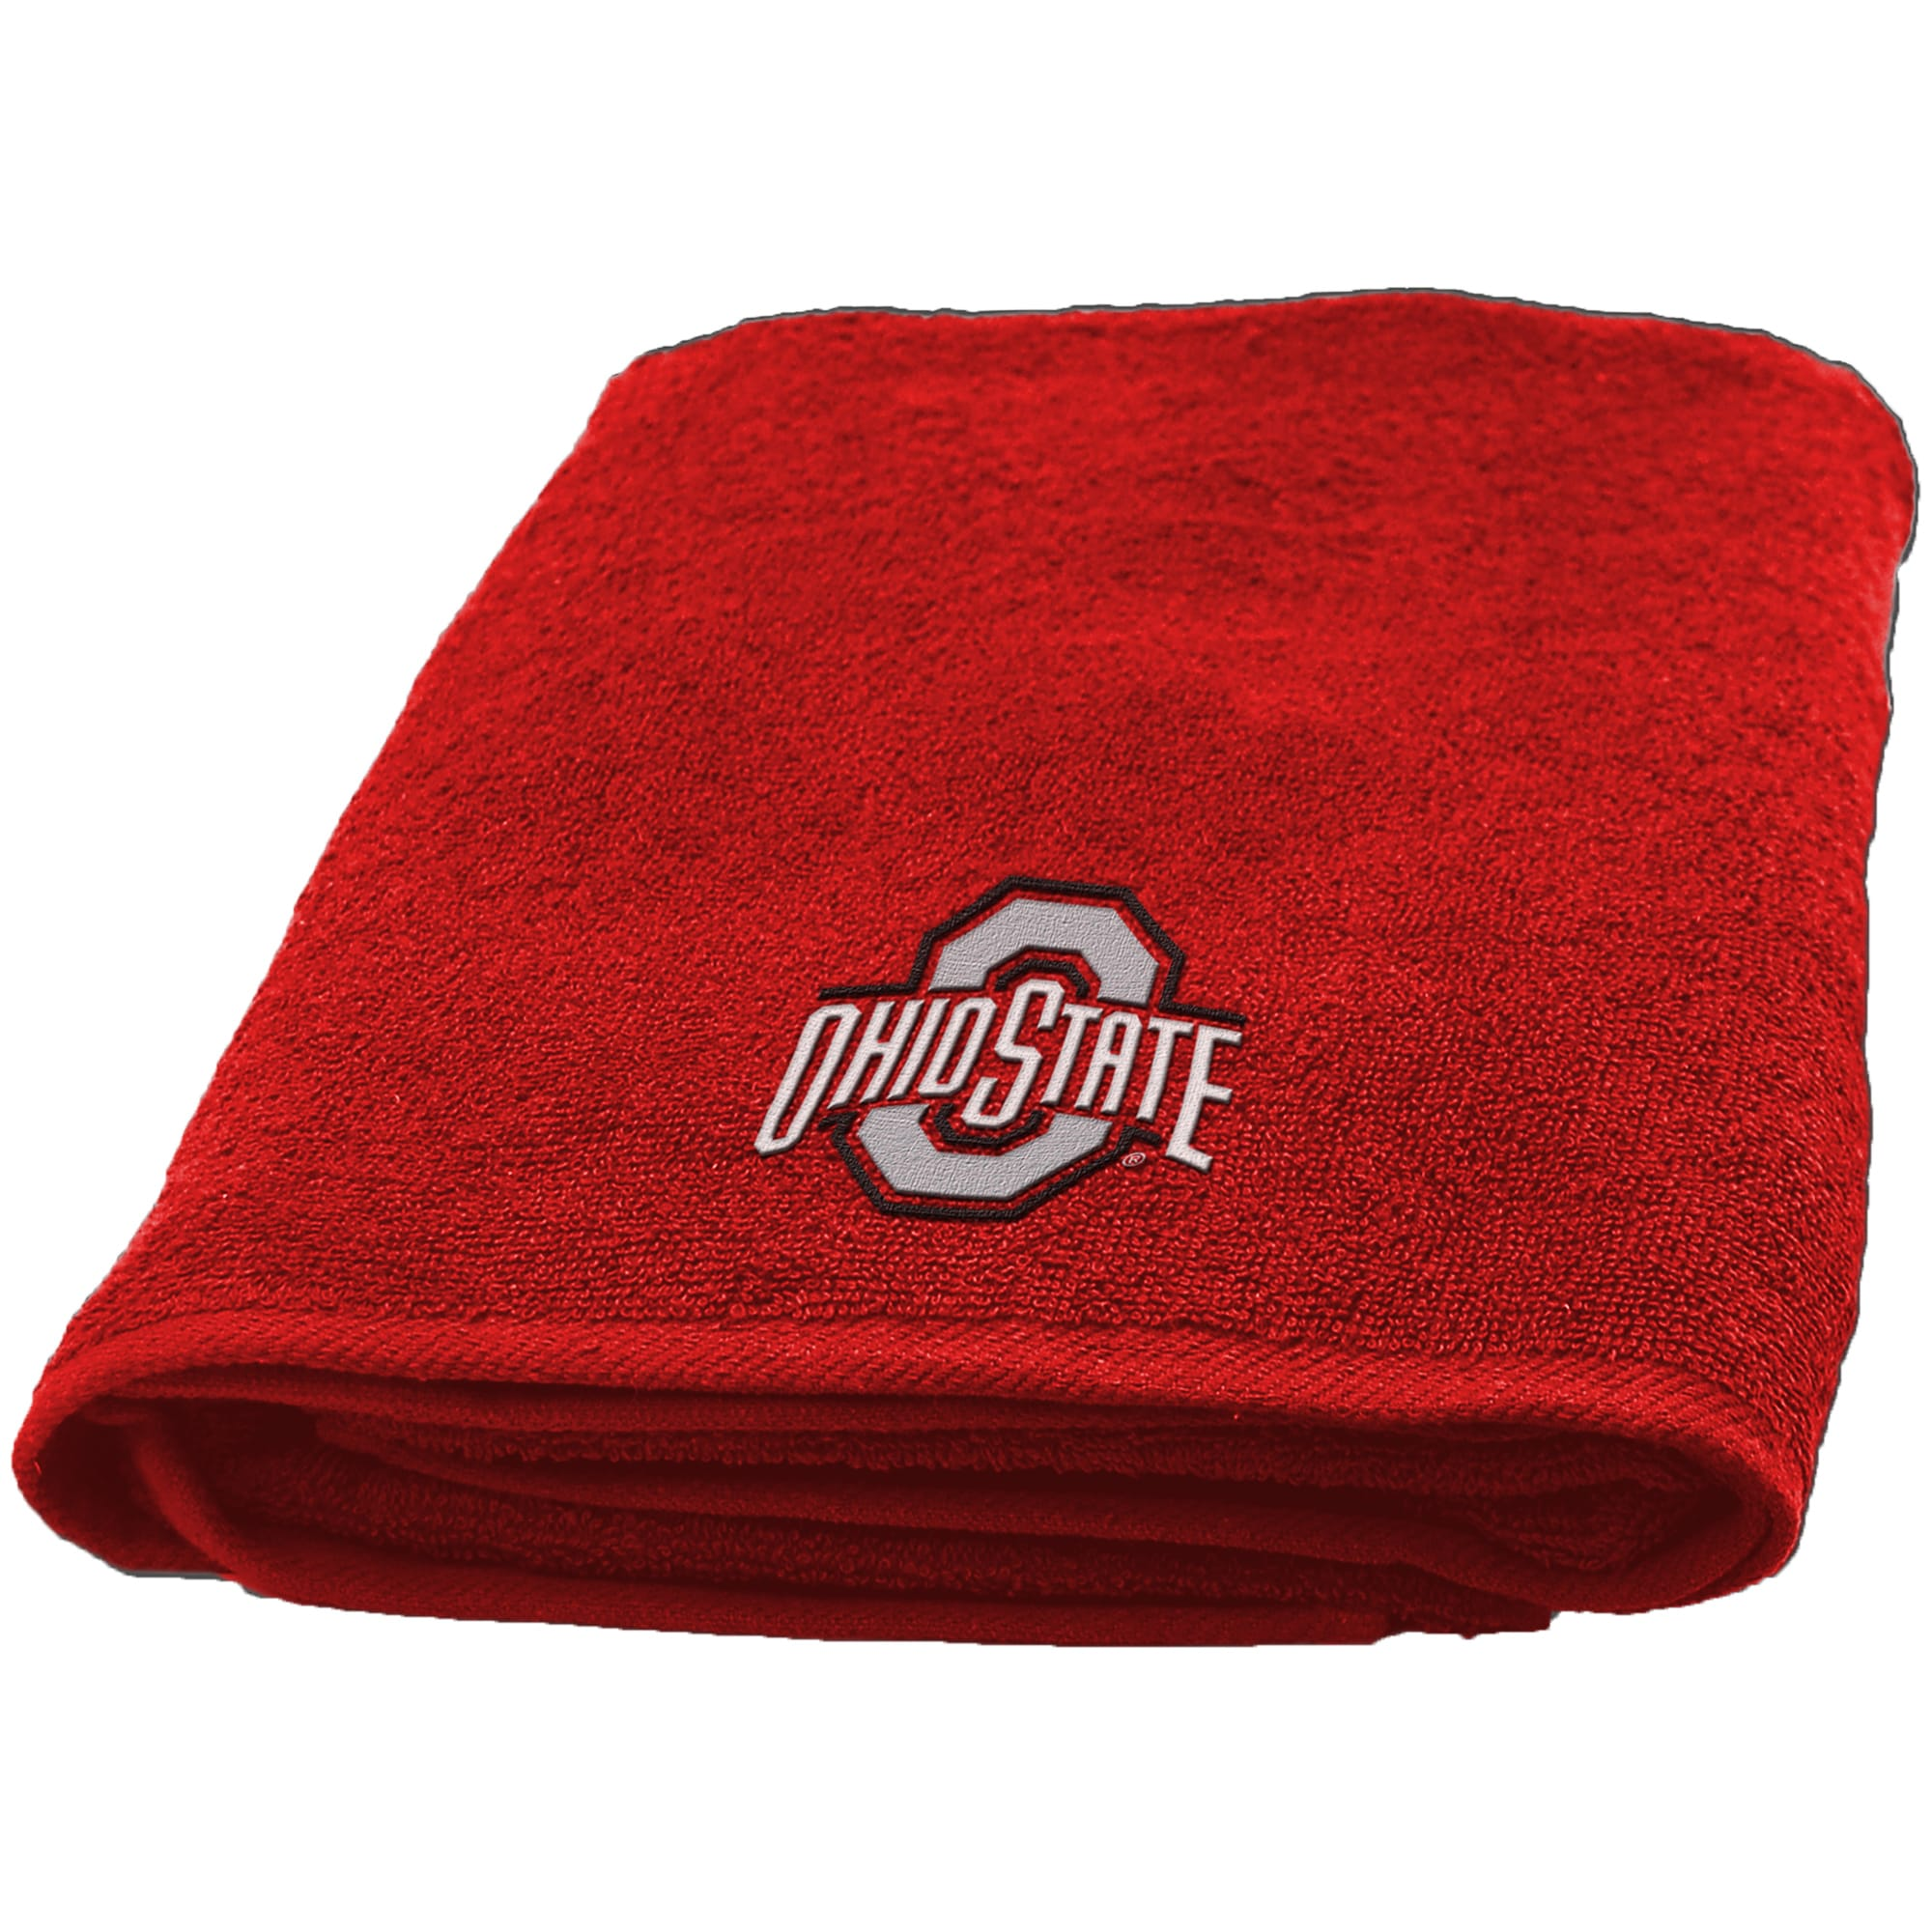 The Memory Company NCAA Ohio State University Official Black Pencil Holder Multicolor One Size